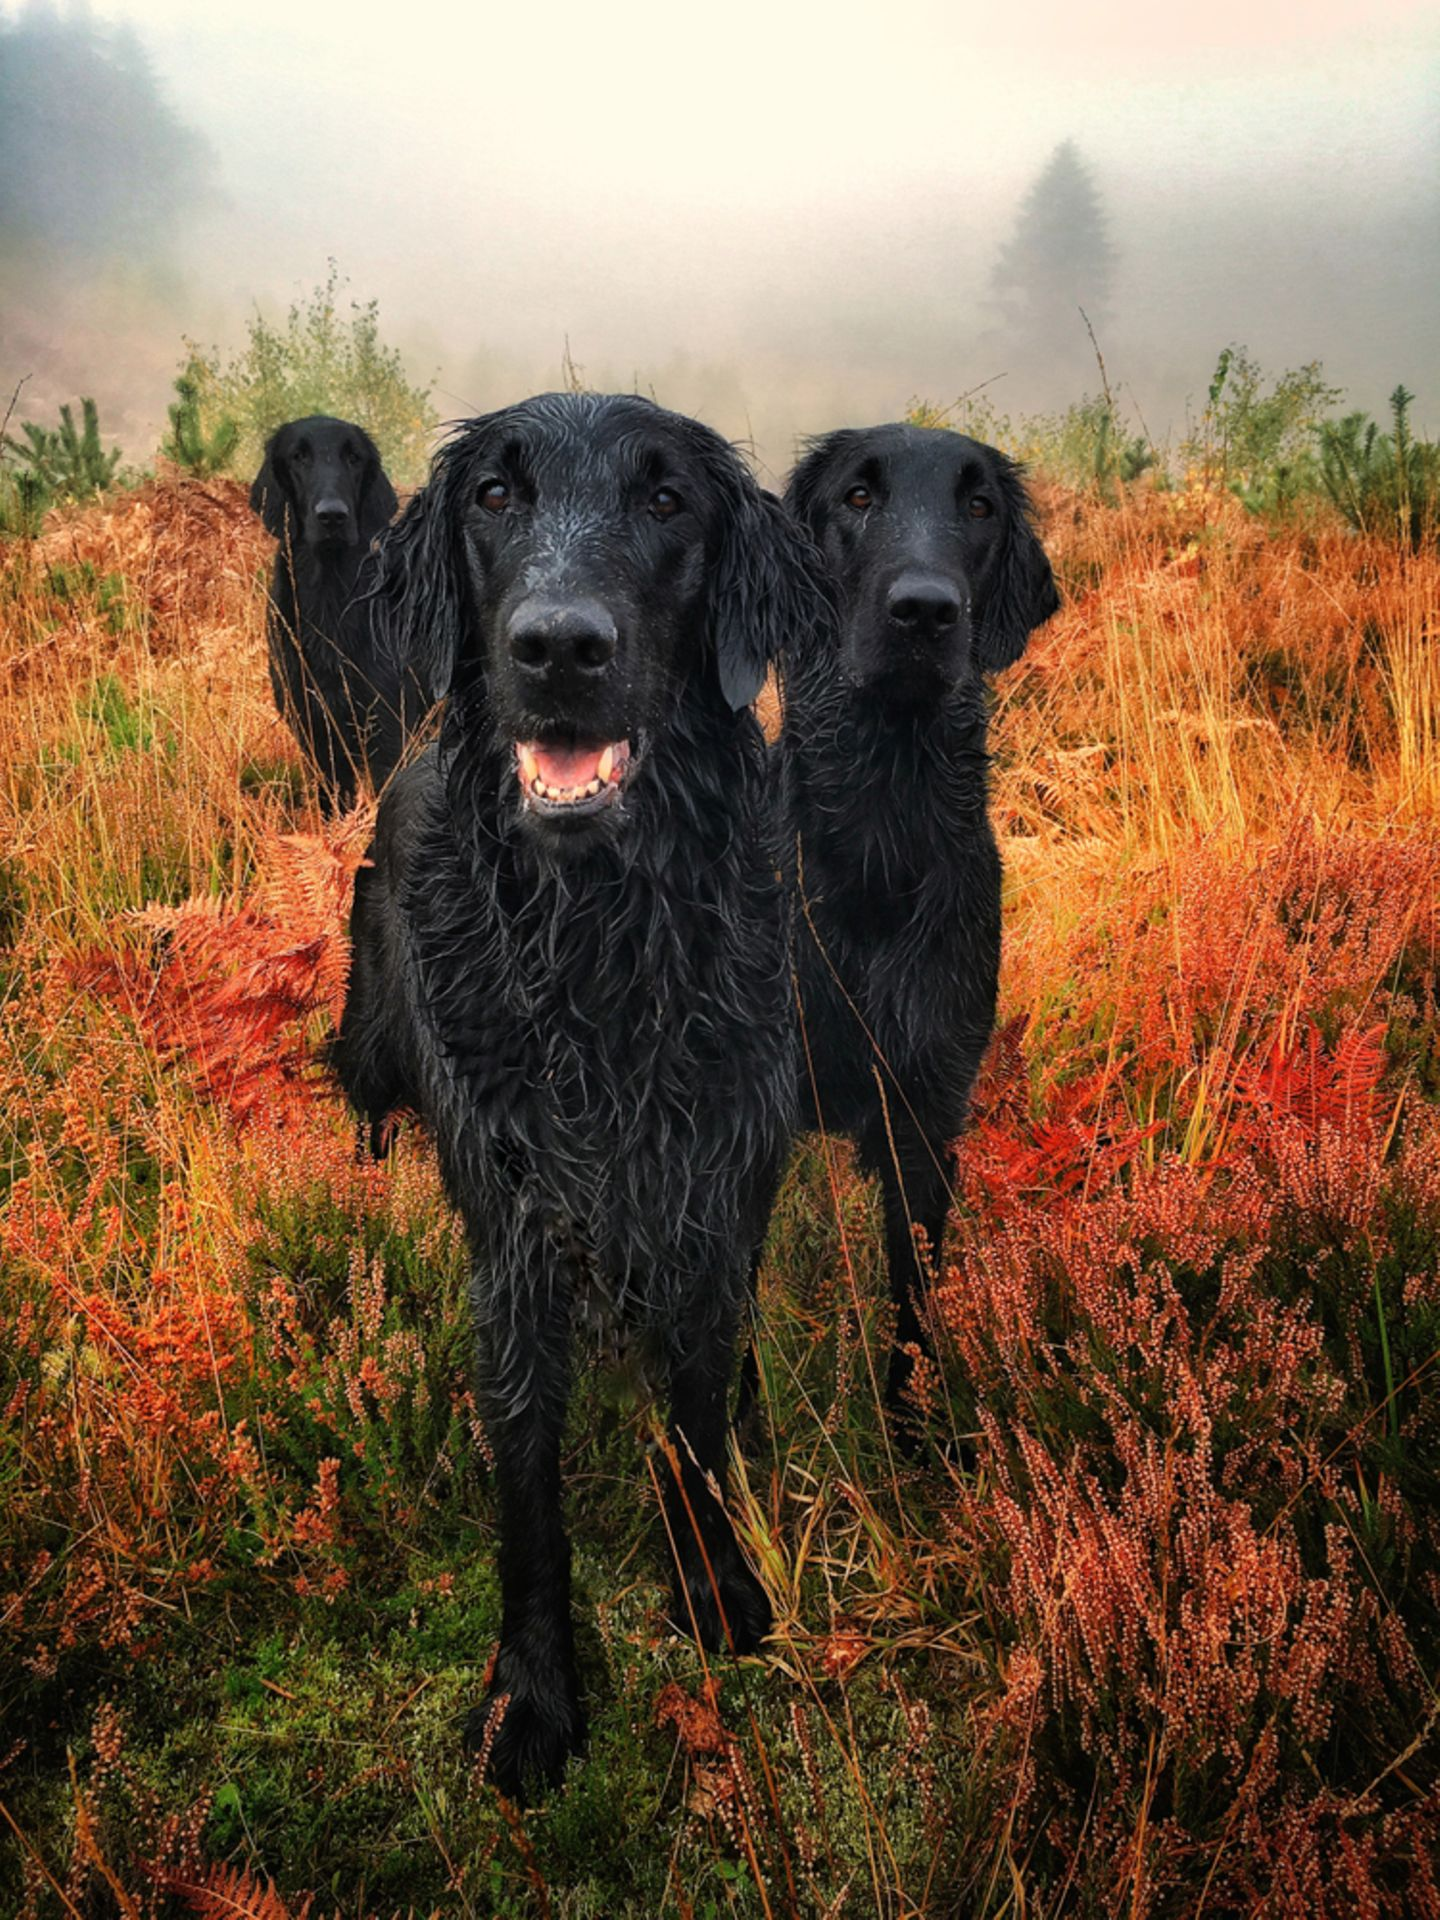 Carol Durrant/the Dog Photographer of the Year 2018